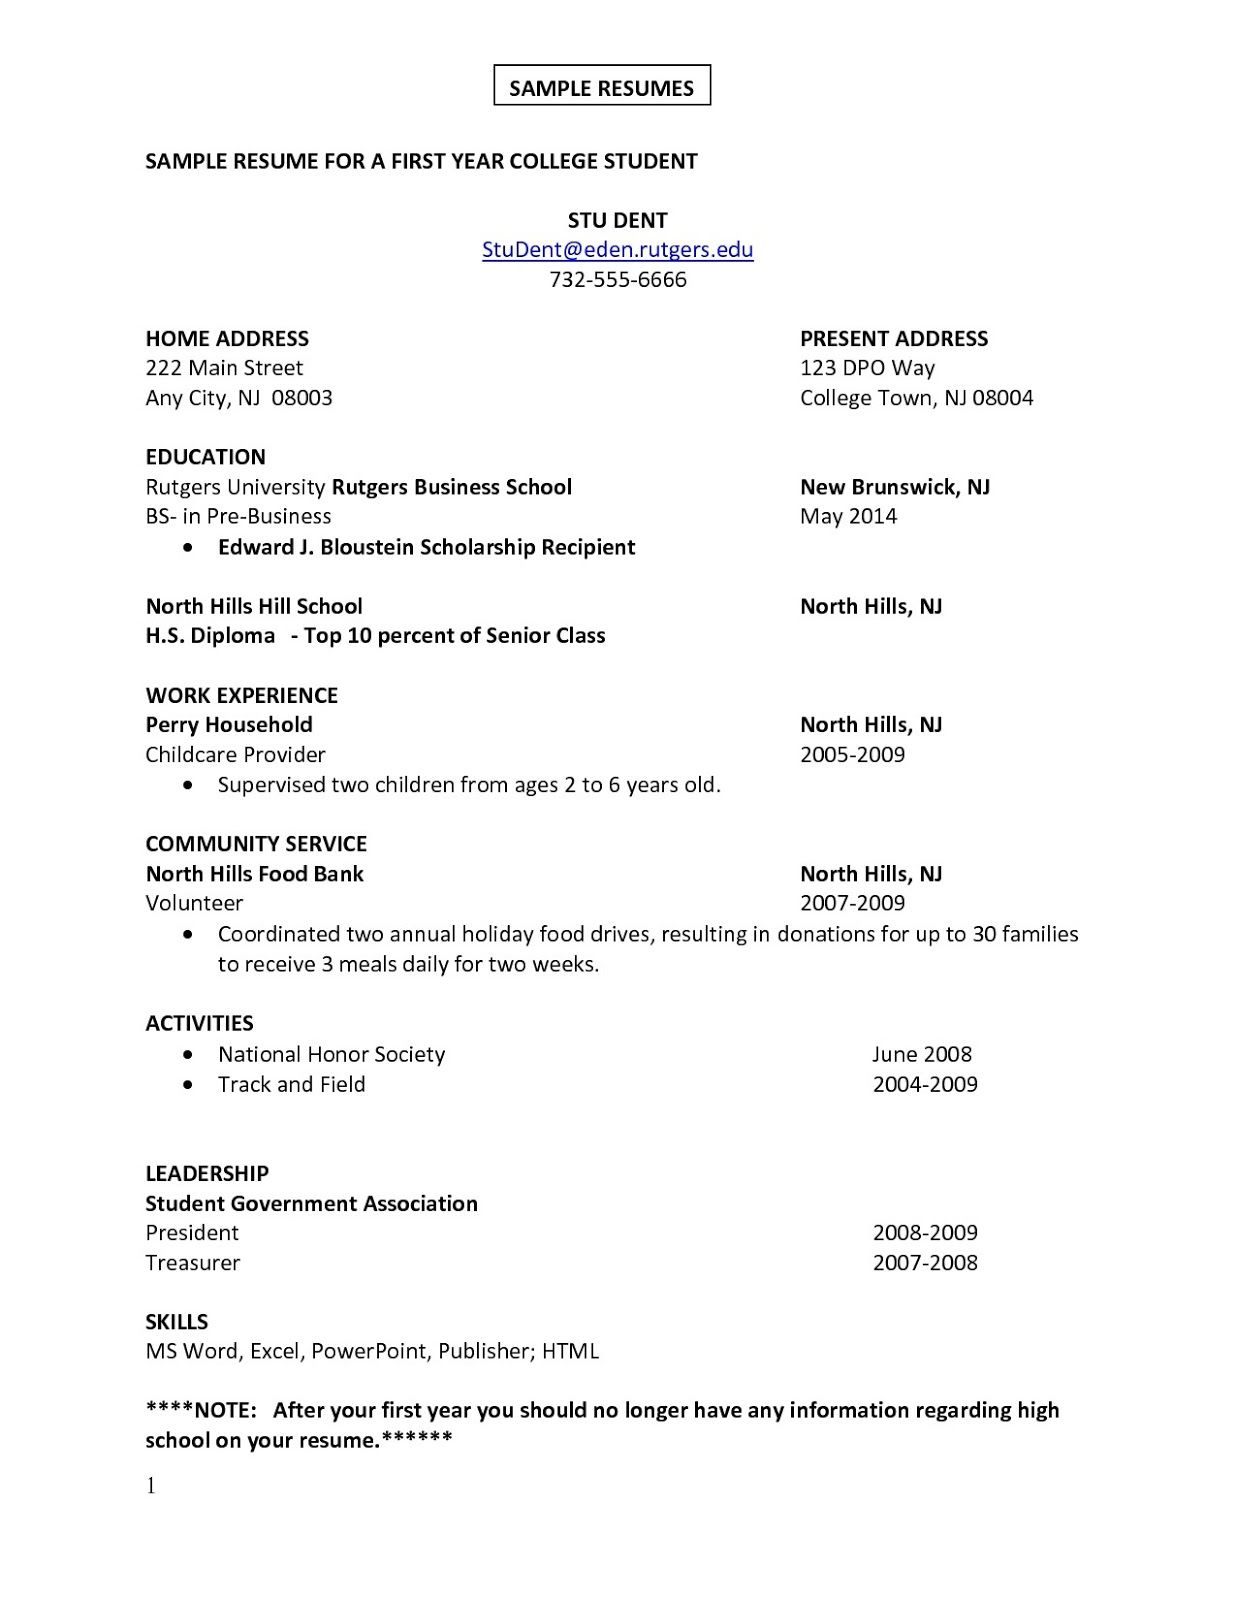 first job sample resume sample resumes sample resumes pinterest sample resume sample